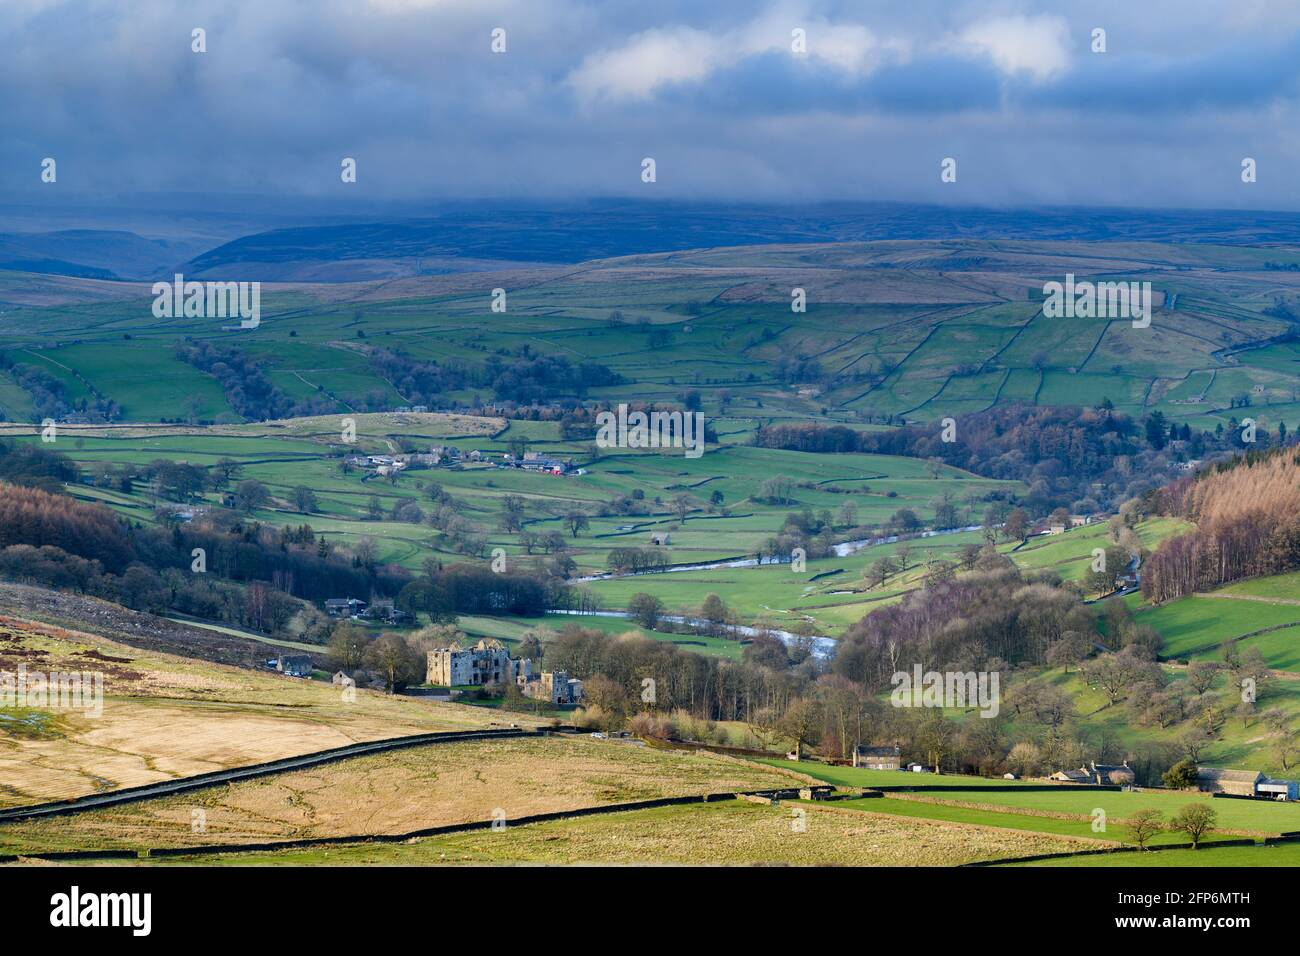 Scenic rural view of Wharfedale (wide green valley, rolling hills, high upland fells & moors, sunlit Barden Tower ruins) - Yorkshire Dales England, UK Stock Photo